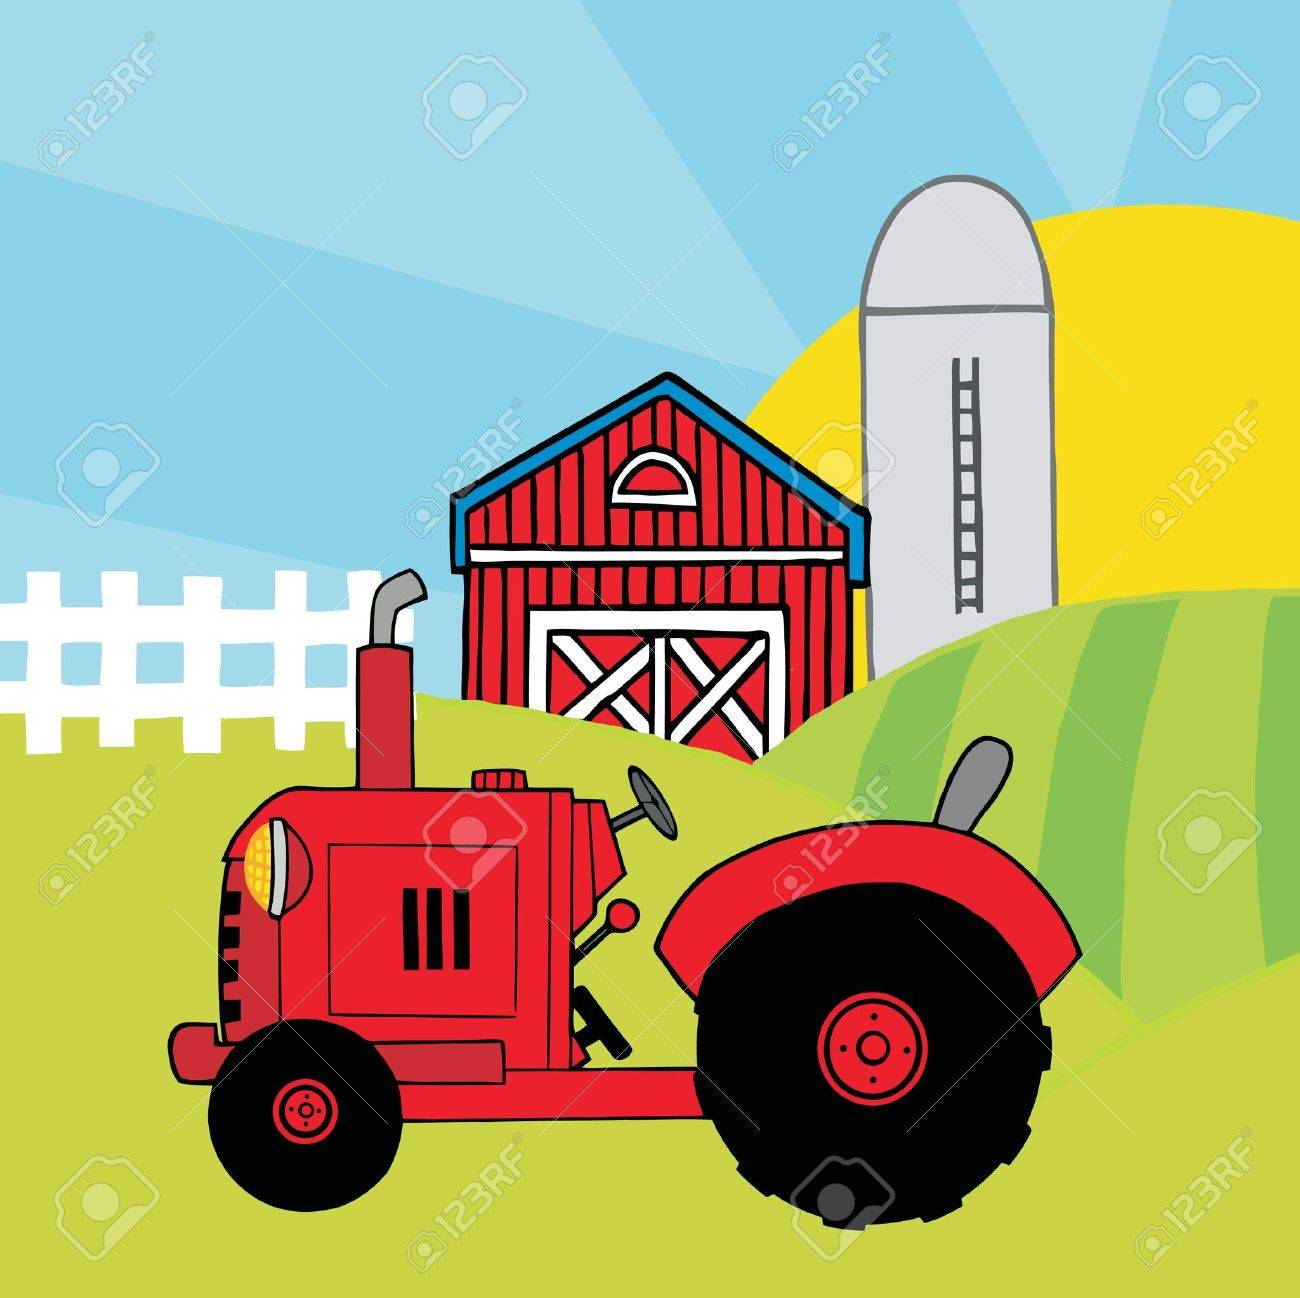 Cow on green pasture with red barn with grain silo royalty free stock - Red Barn Red Farm Tractor In A Pasture Near A Barn And Silo